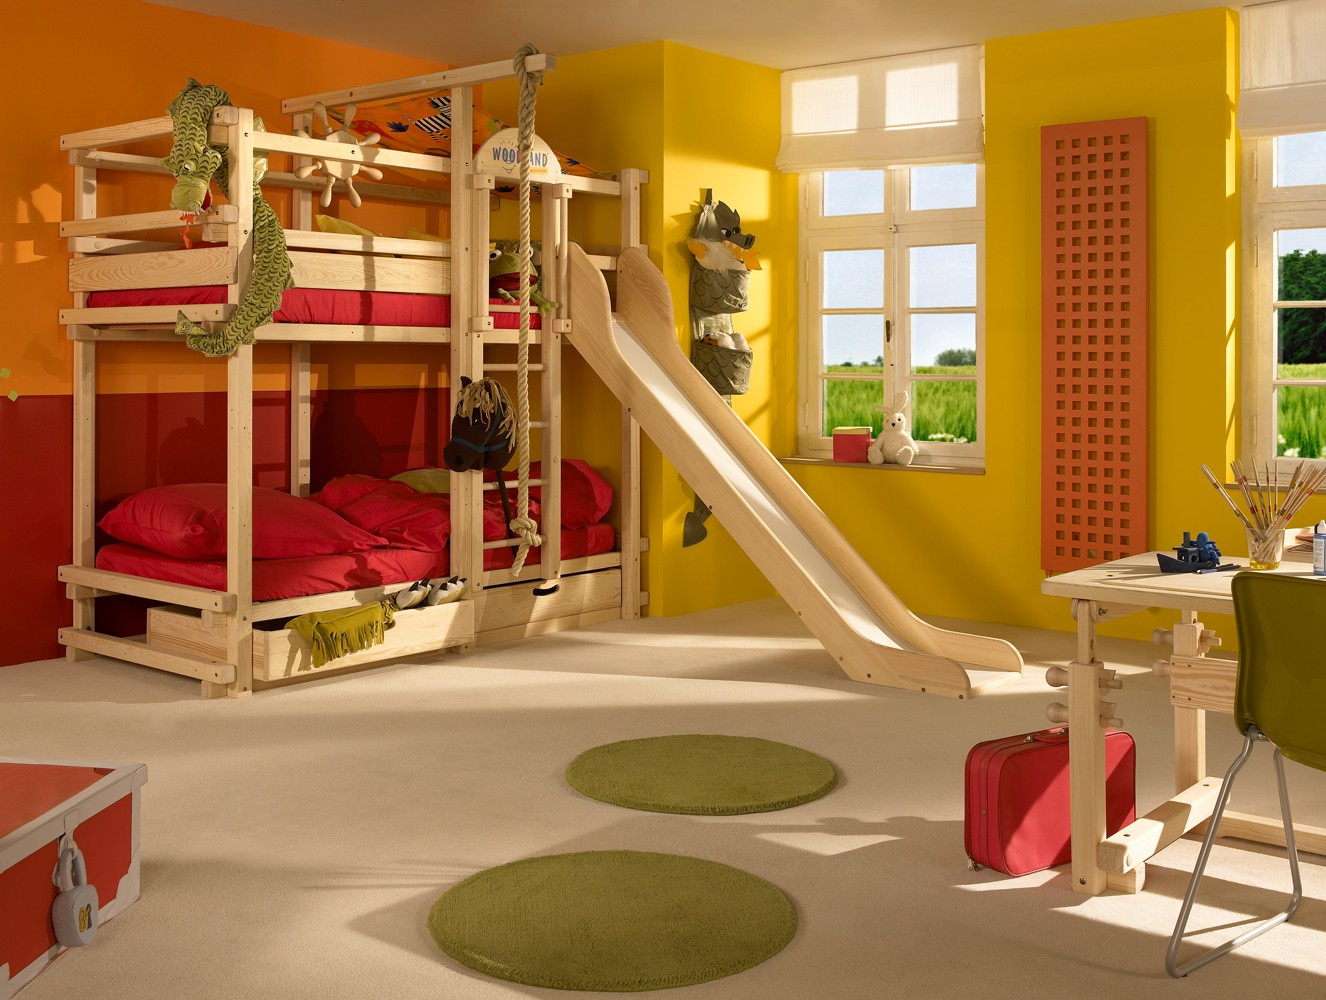 Bunk Bed Slide Diy Online Discount Shop For Electronics Apparel Toys Books Games Computers Shoes Jewelry Watches Baby Products Sports Outdoors Office Products Bed Bath Furniture Tools Hardware Automotive